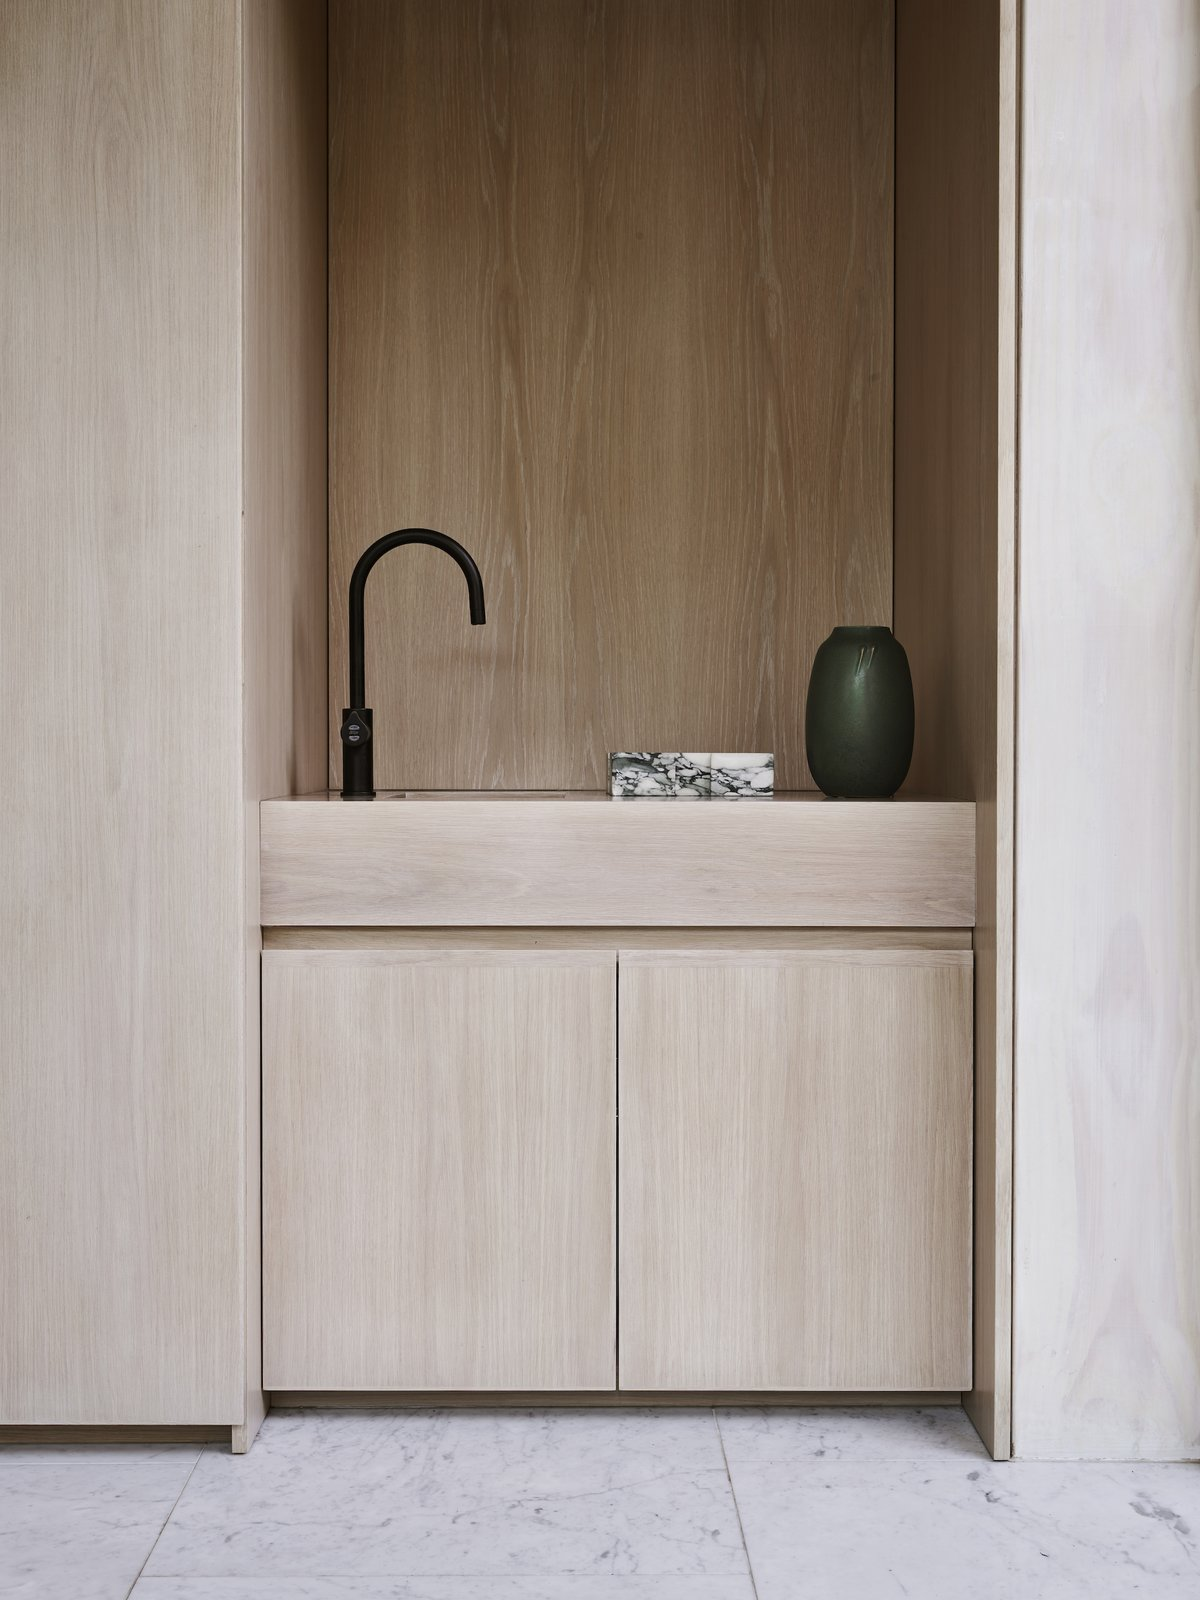 Kitchen joinery at Bondi Junction House by Alexander & CO.